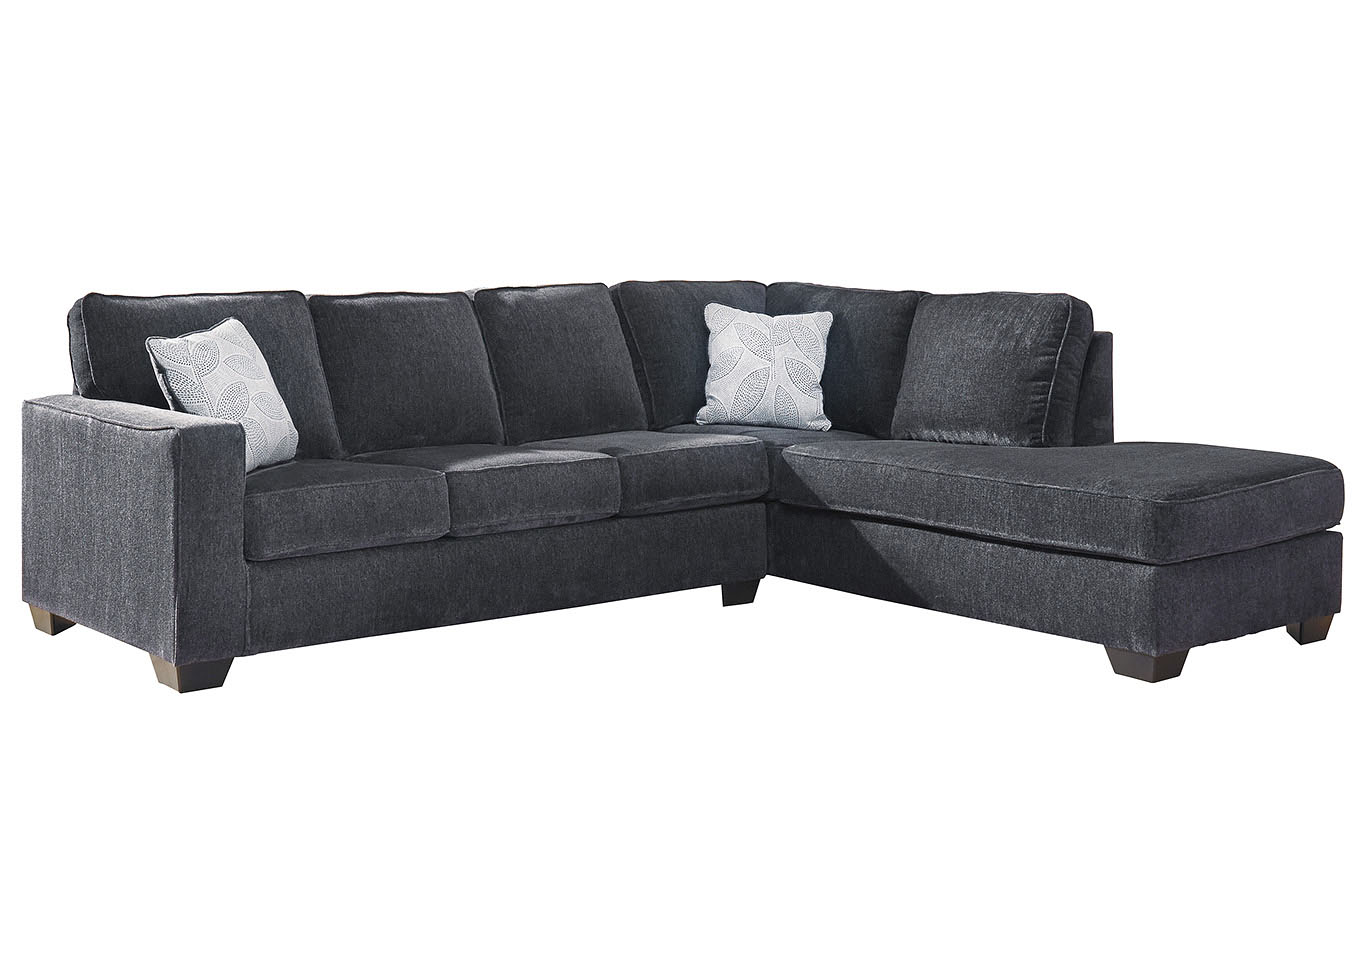 Altari Slate Right-Arm Facing Chaise End Sectional,Signature Design By Ashley